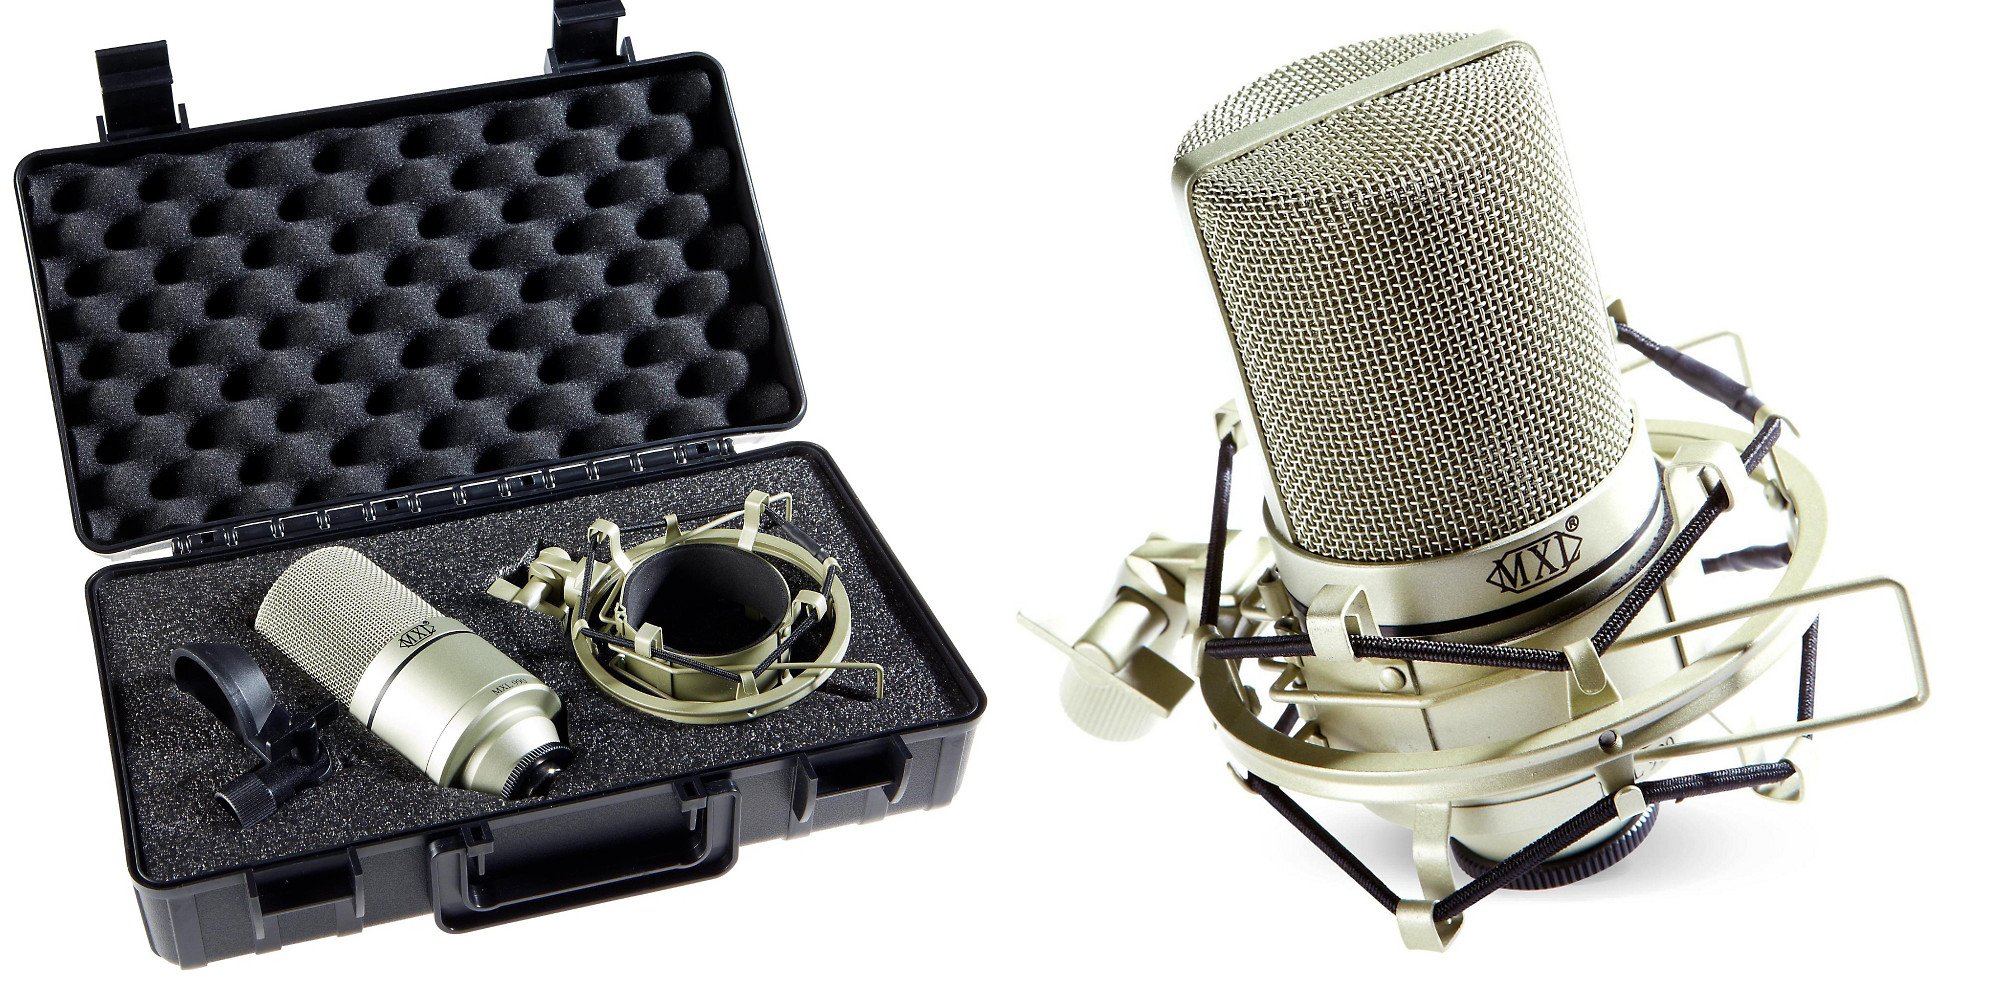 The MXL 990 Mic Kit includes a shock mount, carrying case and more for $60  (Reg. $100) - 9to5Toys